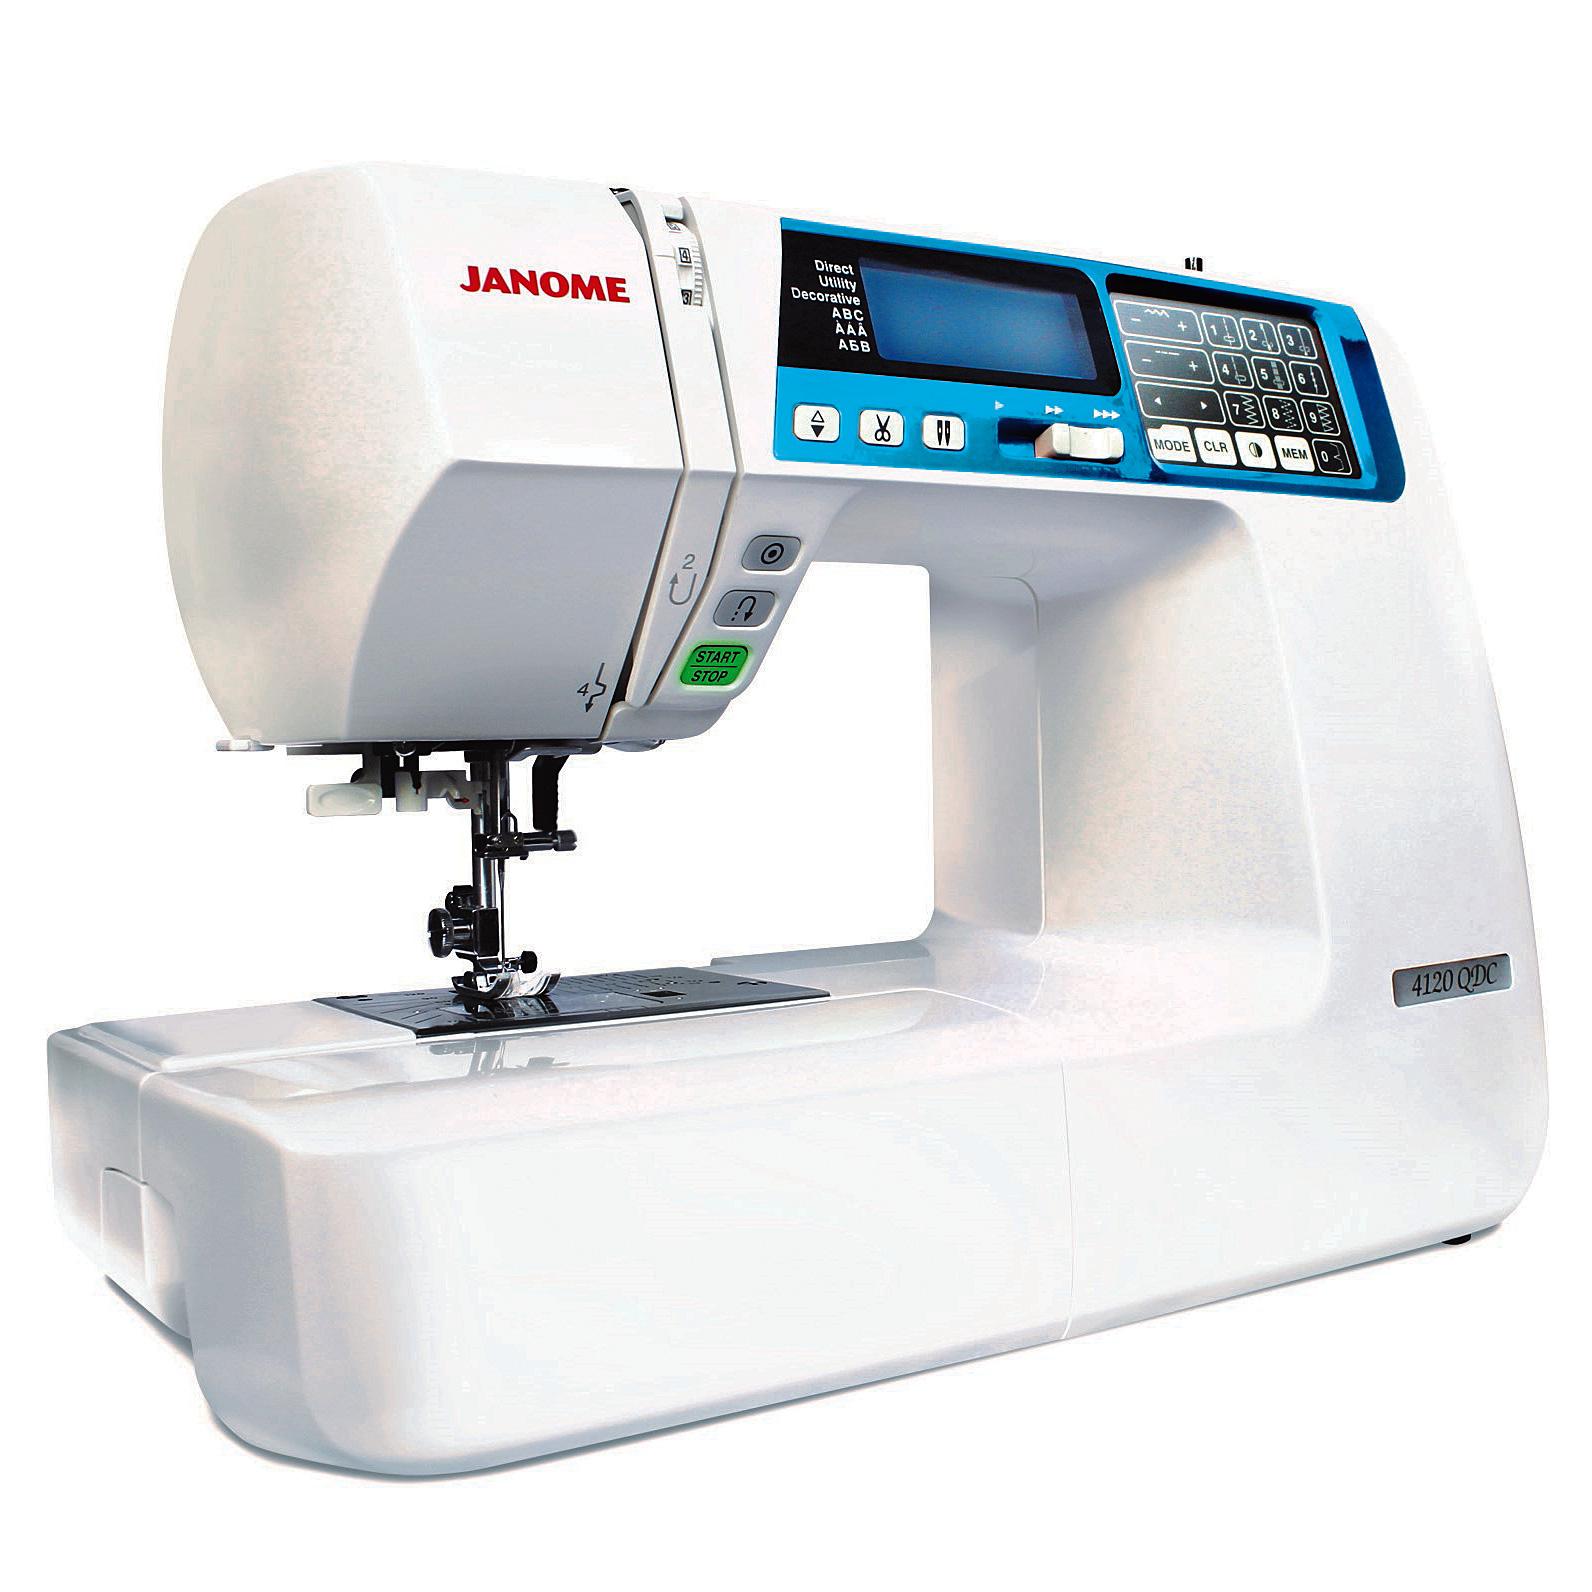 Janome 4120qdc b quilters decor computerized sewing and for Decor 99 sewing machine